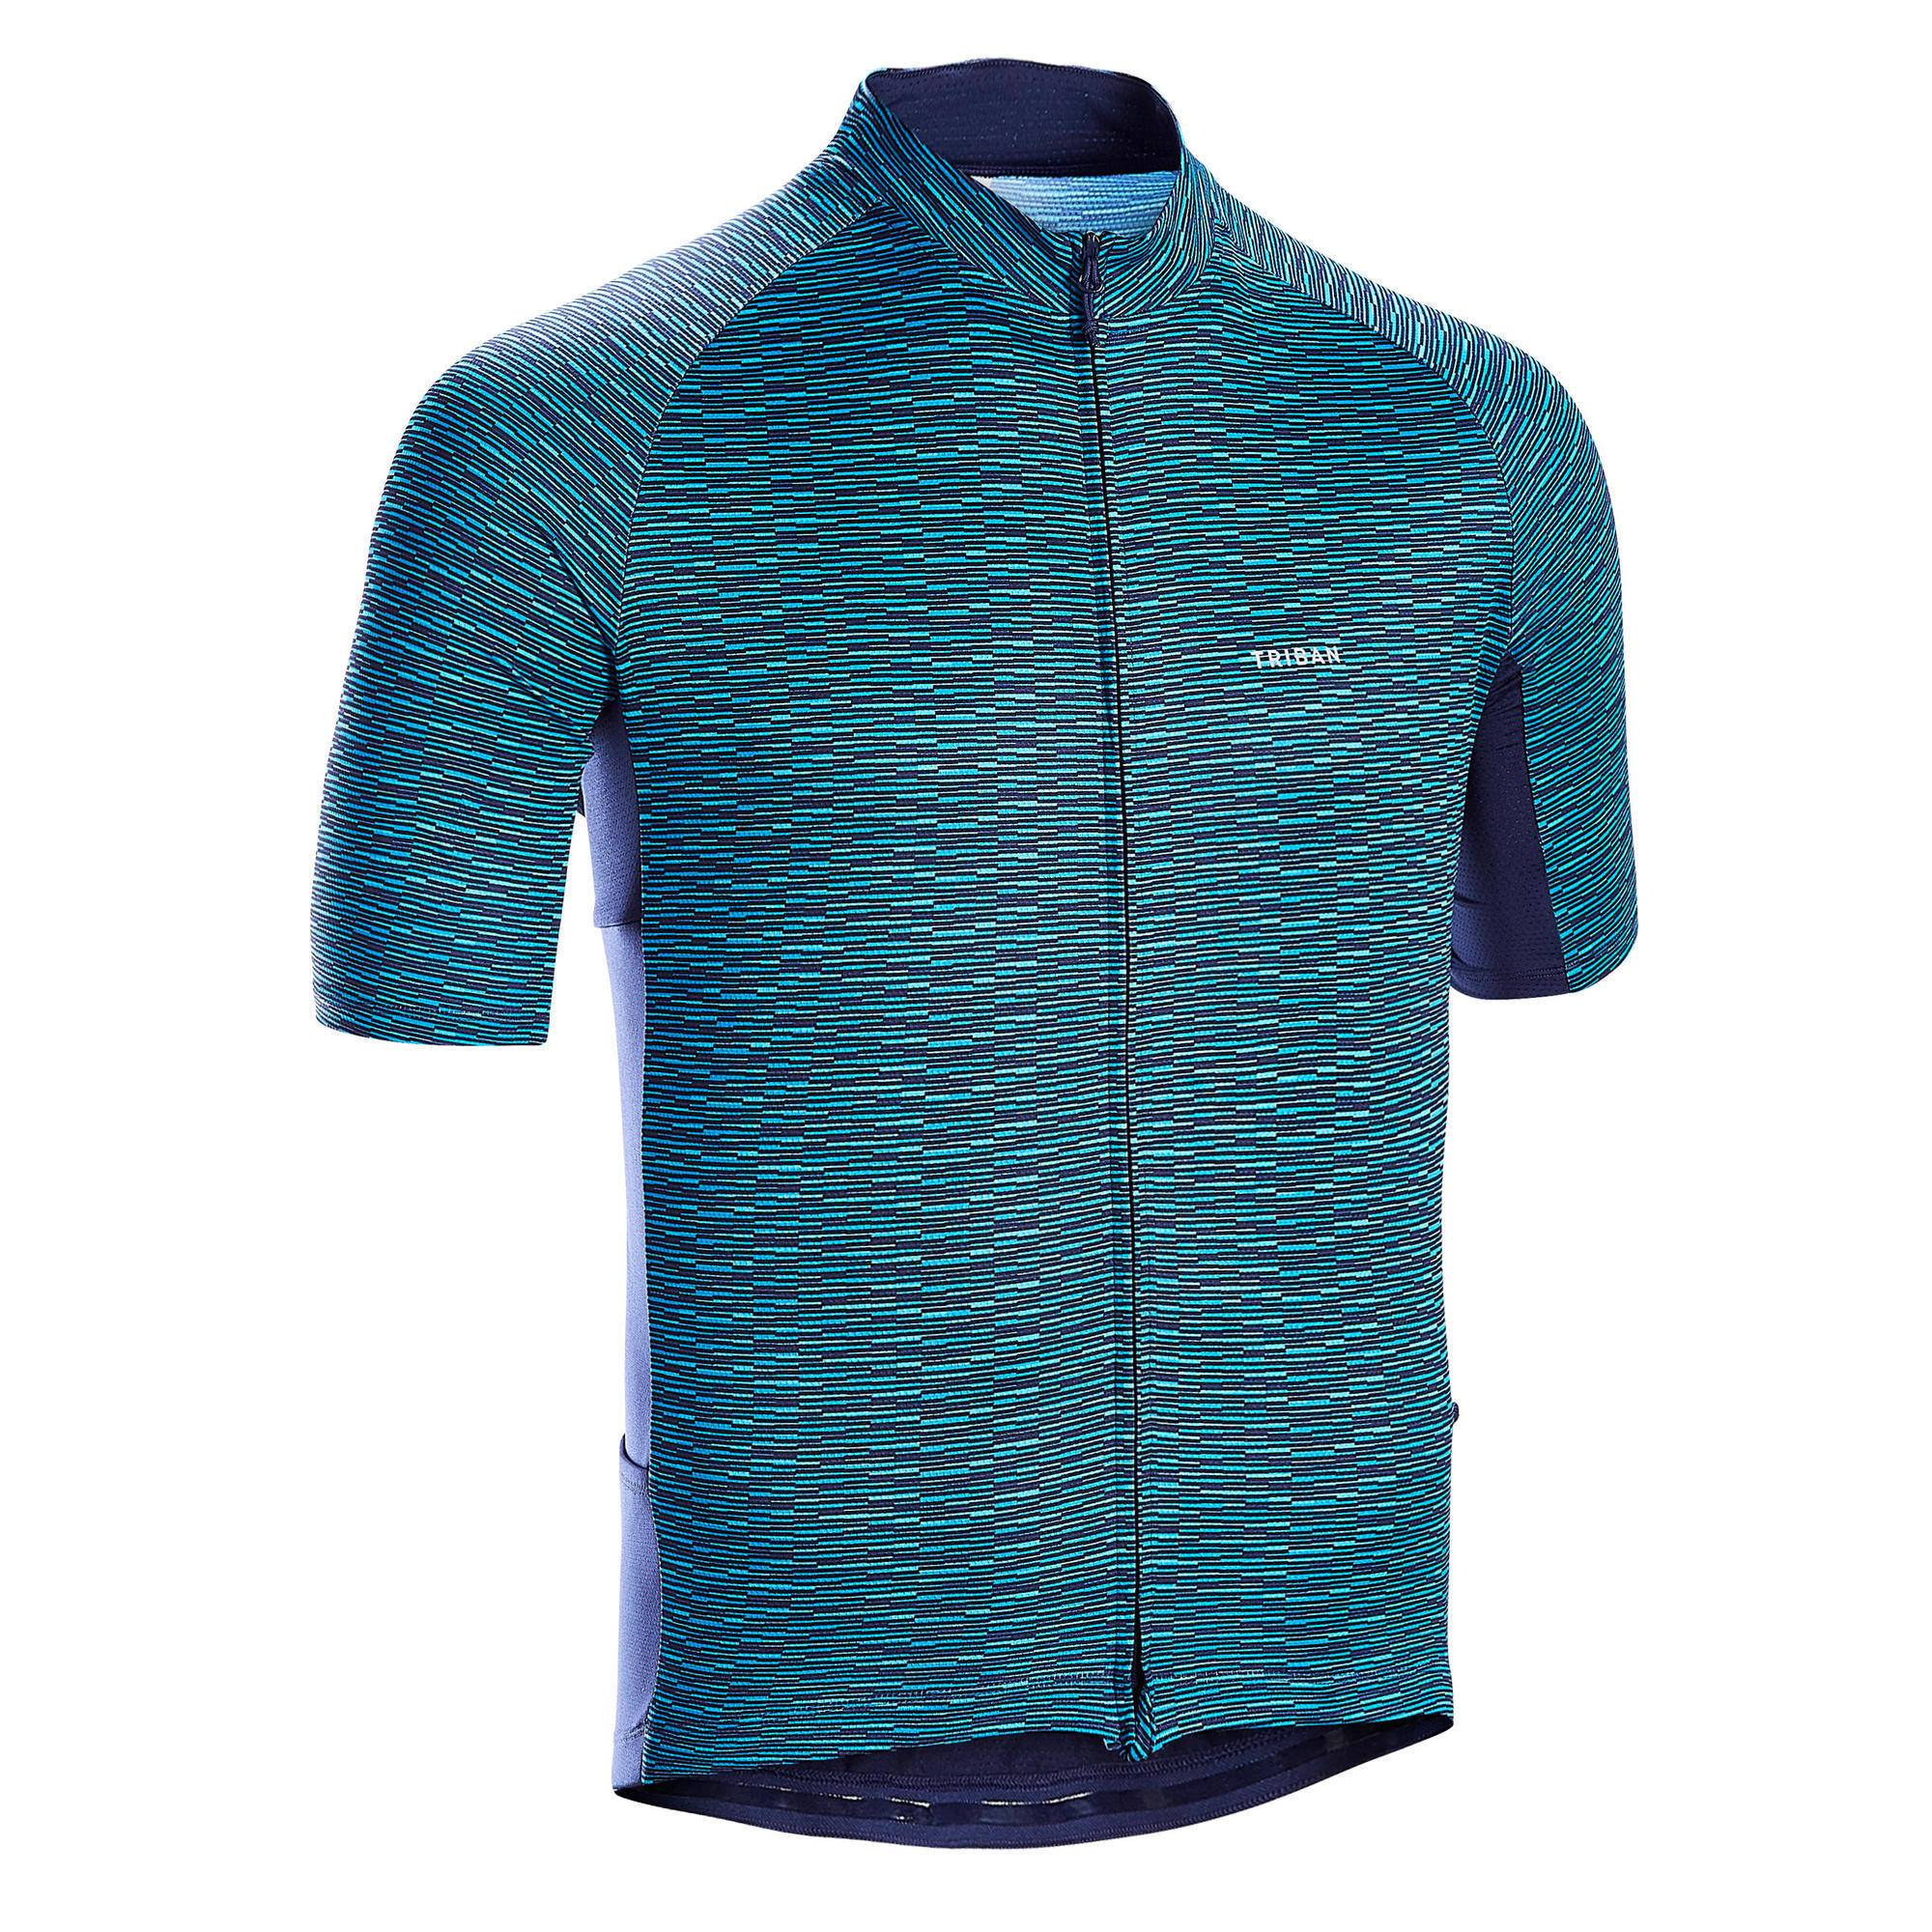 Triban MAILLOT MANCHES COURTES VELO ROUTE TPS CHAUD TRIBAN RC100 SNOW BLEU - Triban